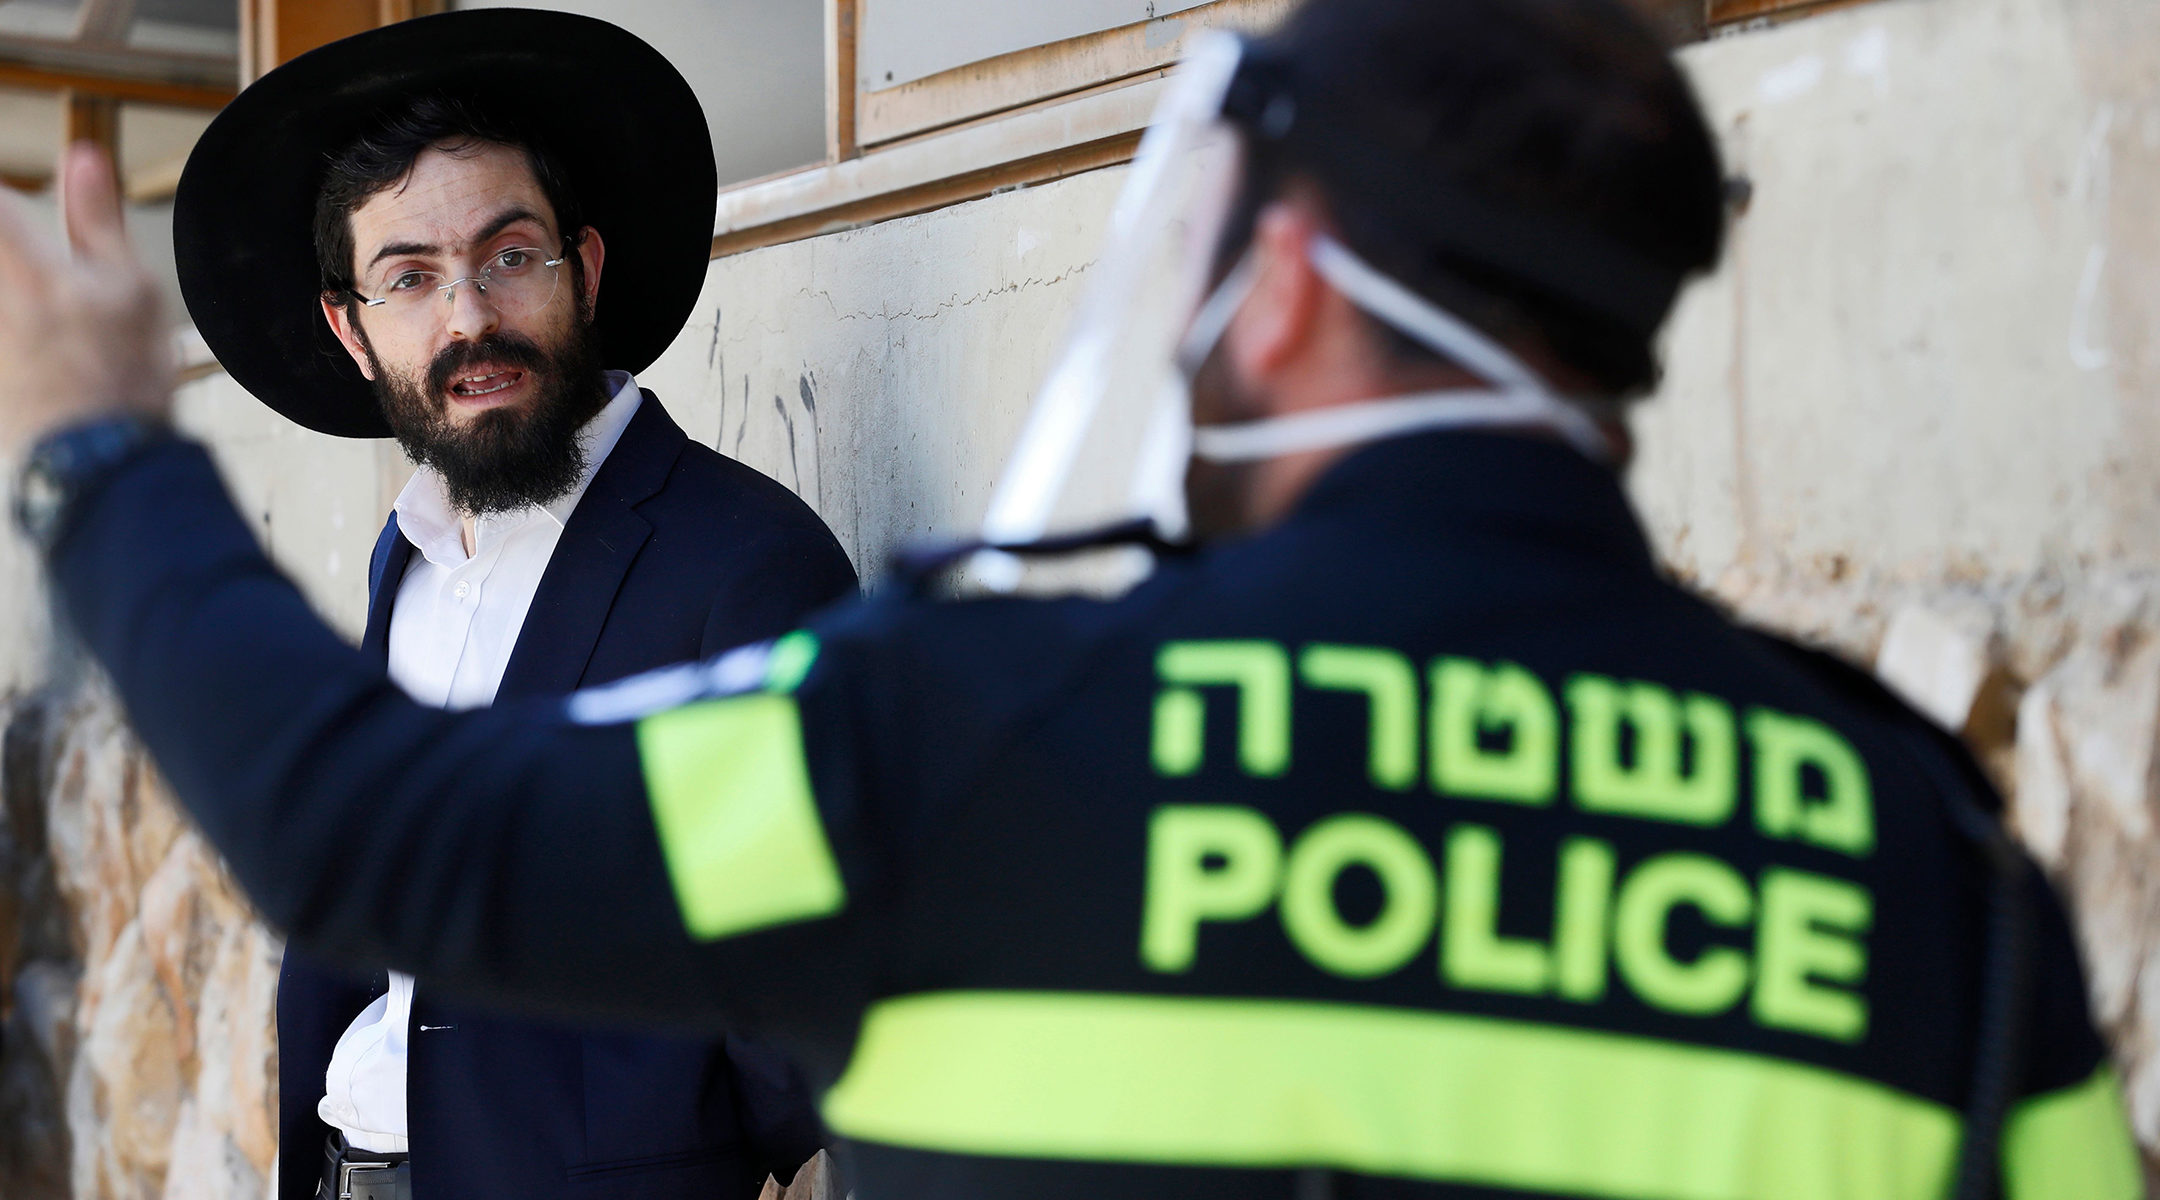 a police officer in a facemask speaks to an orthodox man in black suit and black hat but no facemask